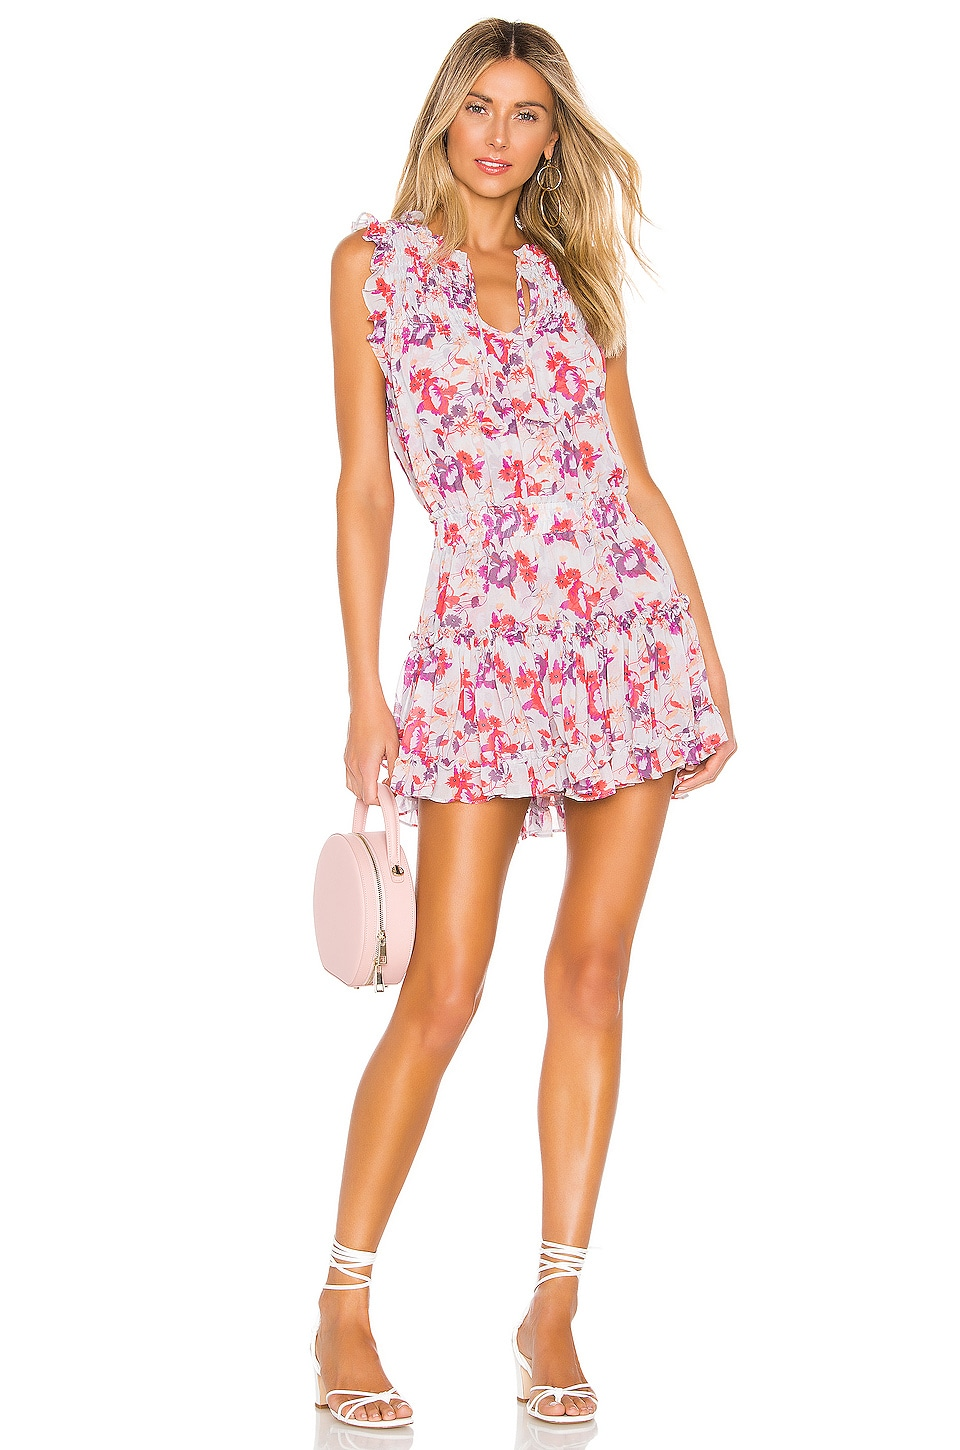 MISA Los Angeles X REVOLVE Aila Dress in Lilac Floral